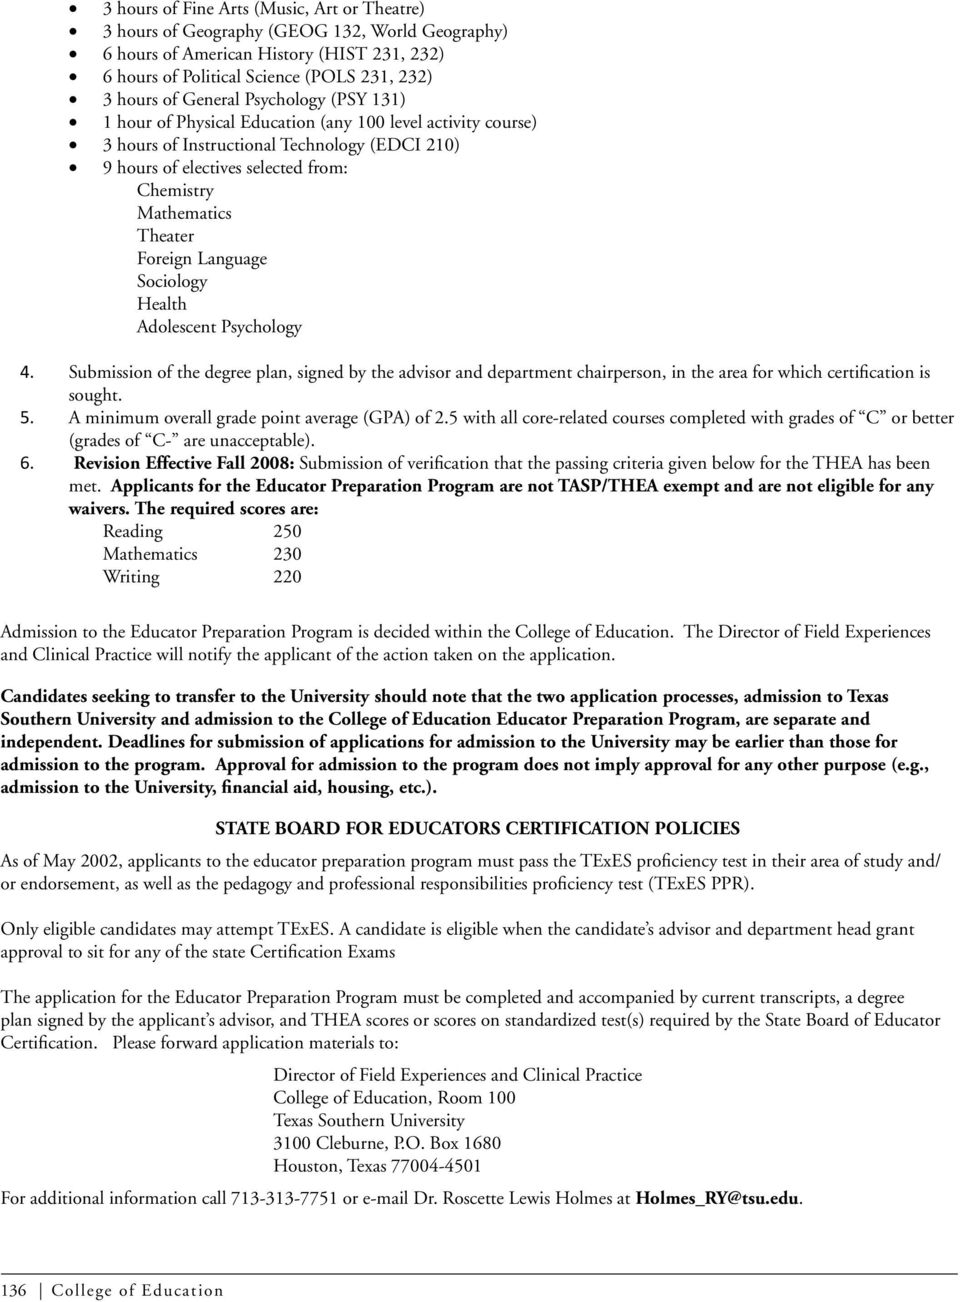 Theater Foreign Language Sociology Health Adolescent Psychology 4. Submission of the degree plan, signed by the advisor and department chairperson, in the area for which certification is sought. 5.